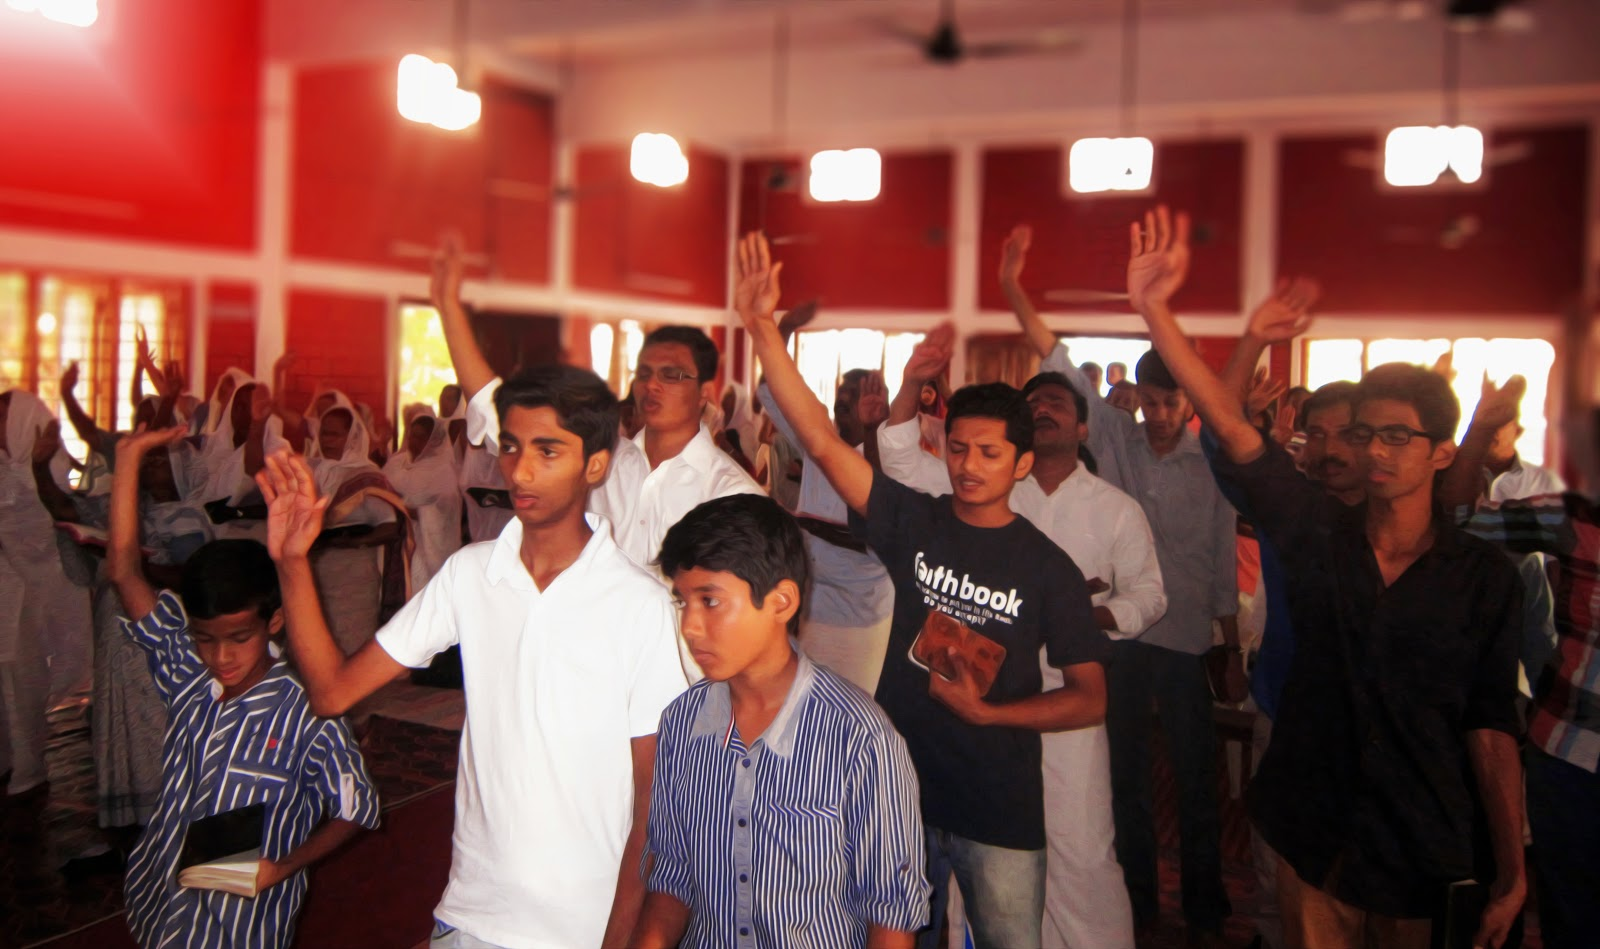 SHARON FELLOWSHIP CHURCH KUTTAPUZHA